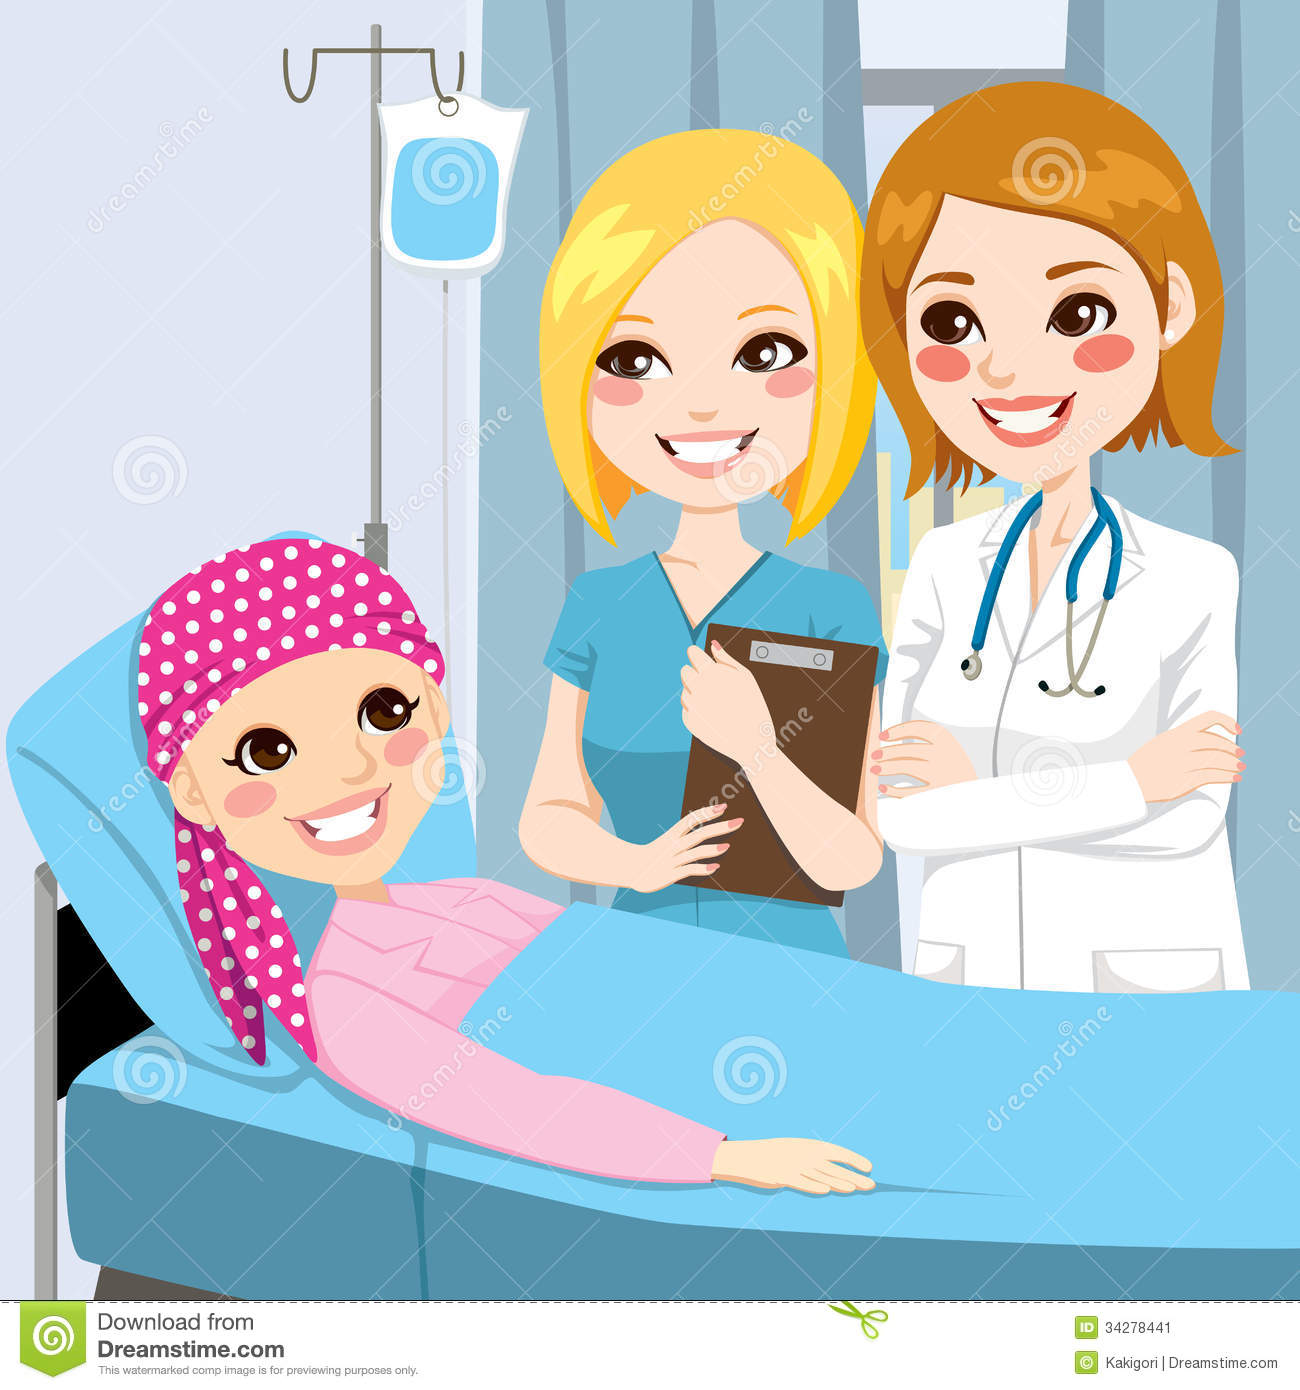 Cancer treatment clipart.